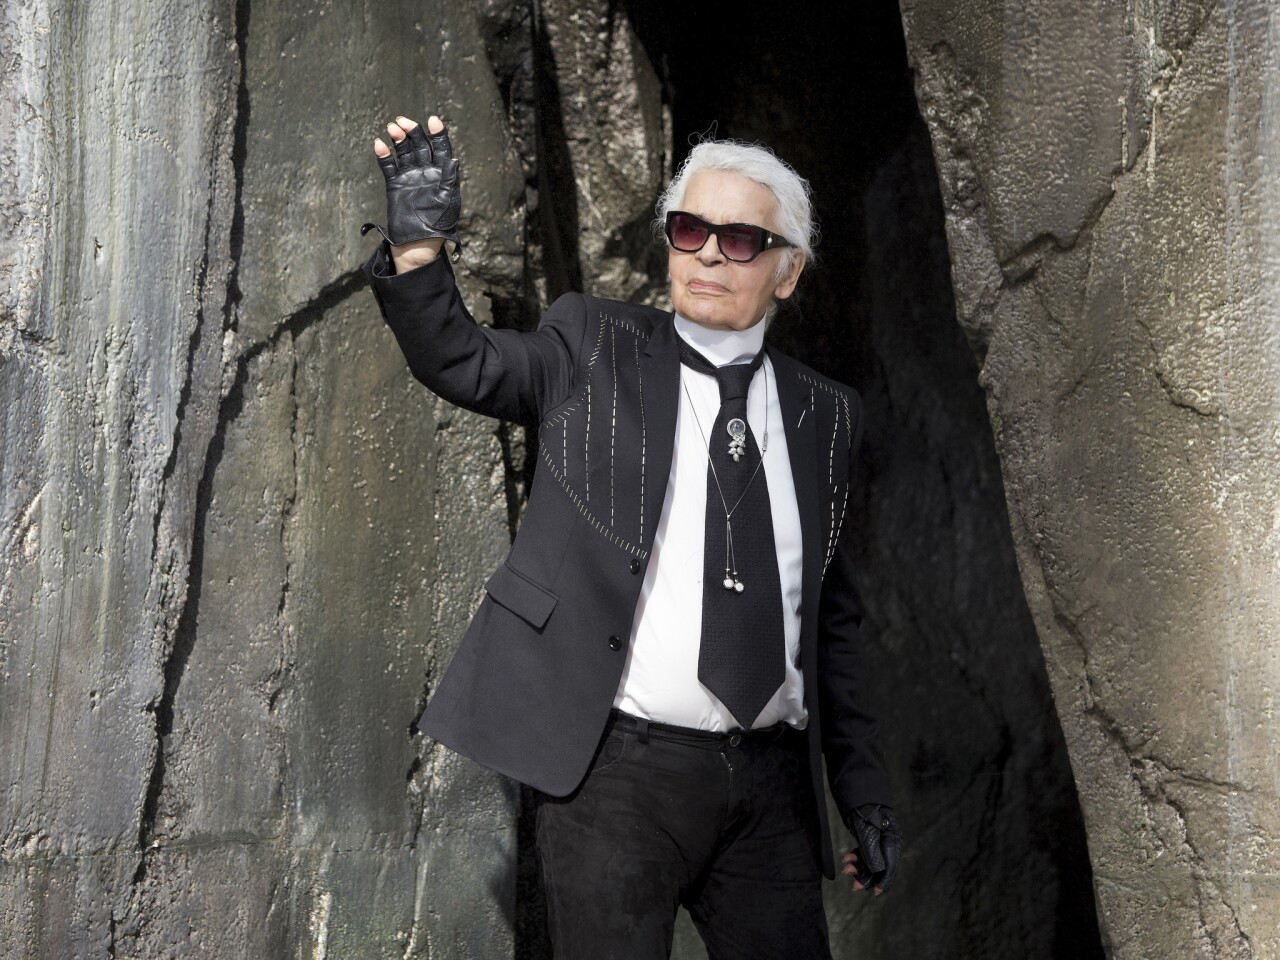 Karl Lagerfeld acknowledges the audience during the Chanel show as part of Paris Fashion Week in October 2018.